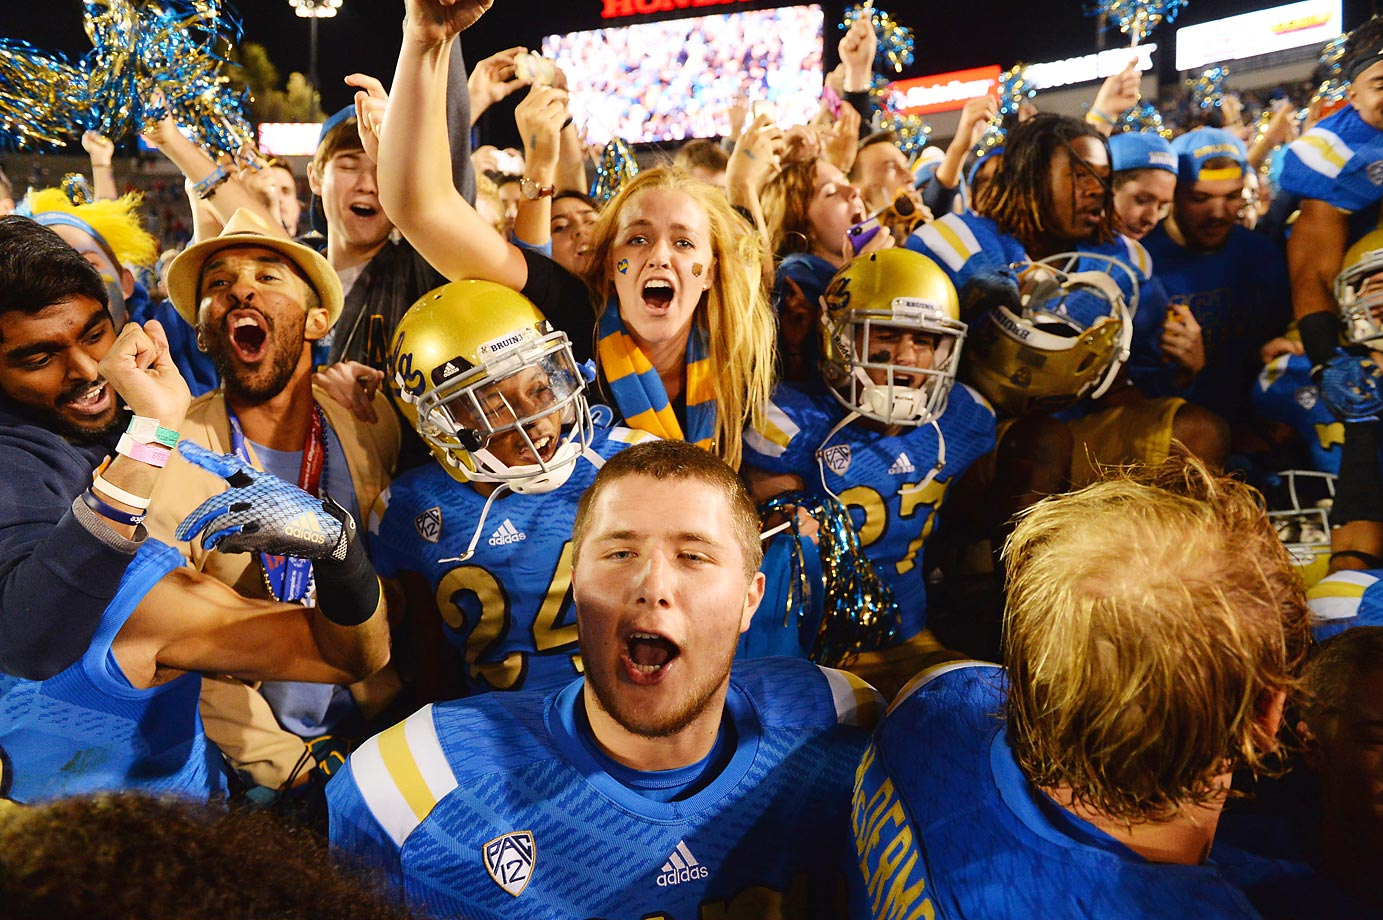 Fans and players after UCLA defeated USC last weekend.